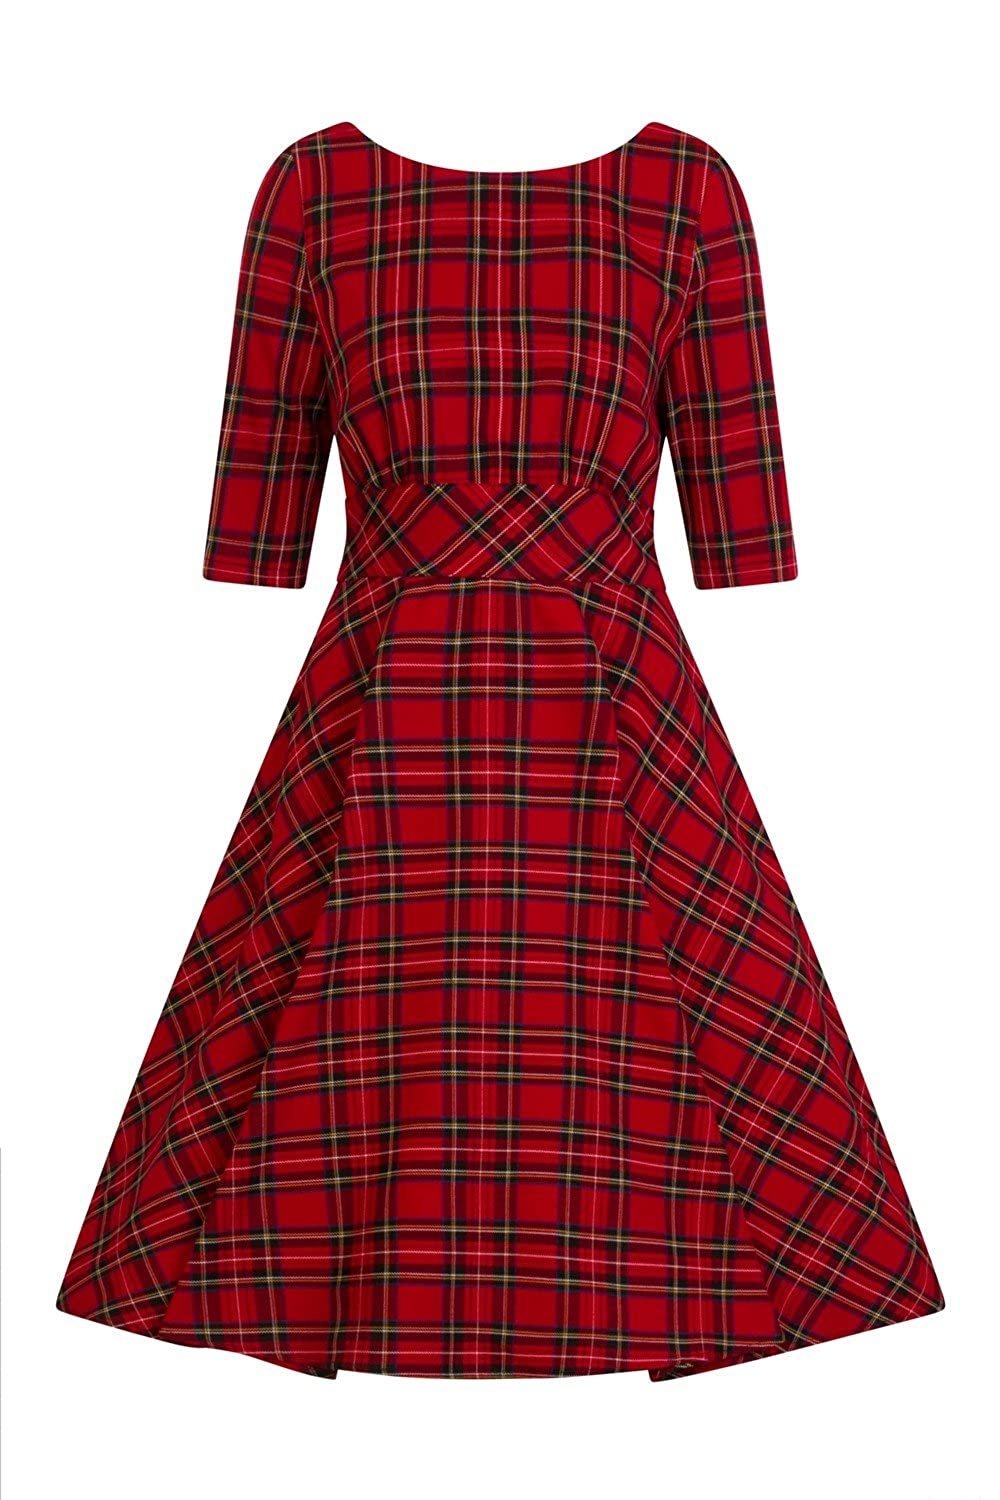 1940s Tea Dresses, Mature, Mrs. Long Sleeve Dresses Hell Bunny Irvine Tartan 1950s Vintage Retro Dress XS-4XL $72.99 AT vintagedancer.com